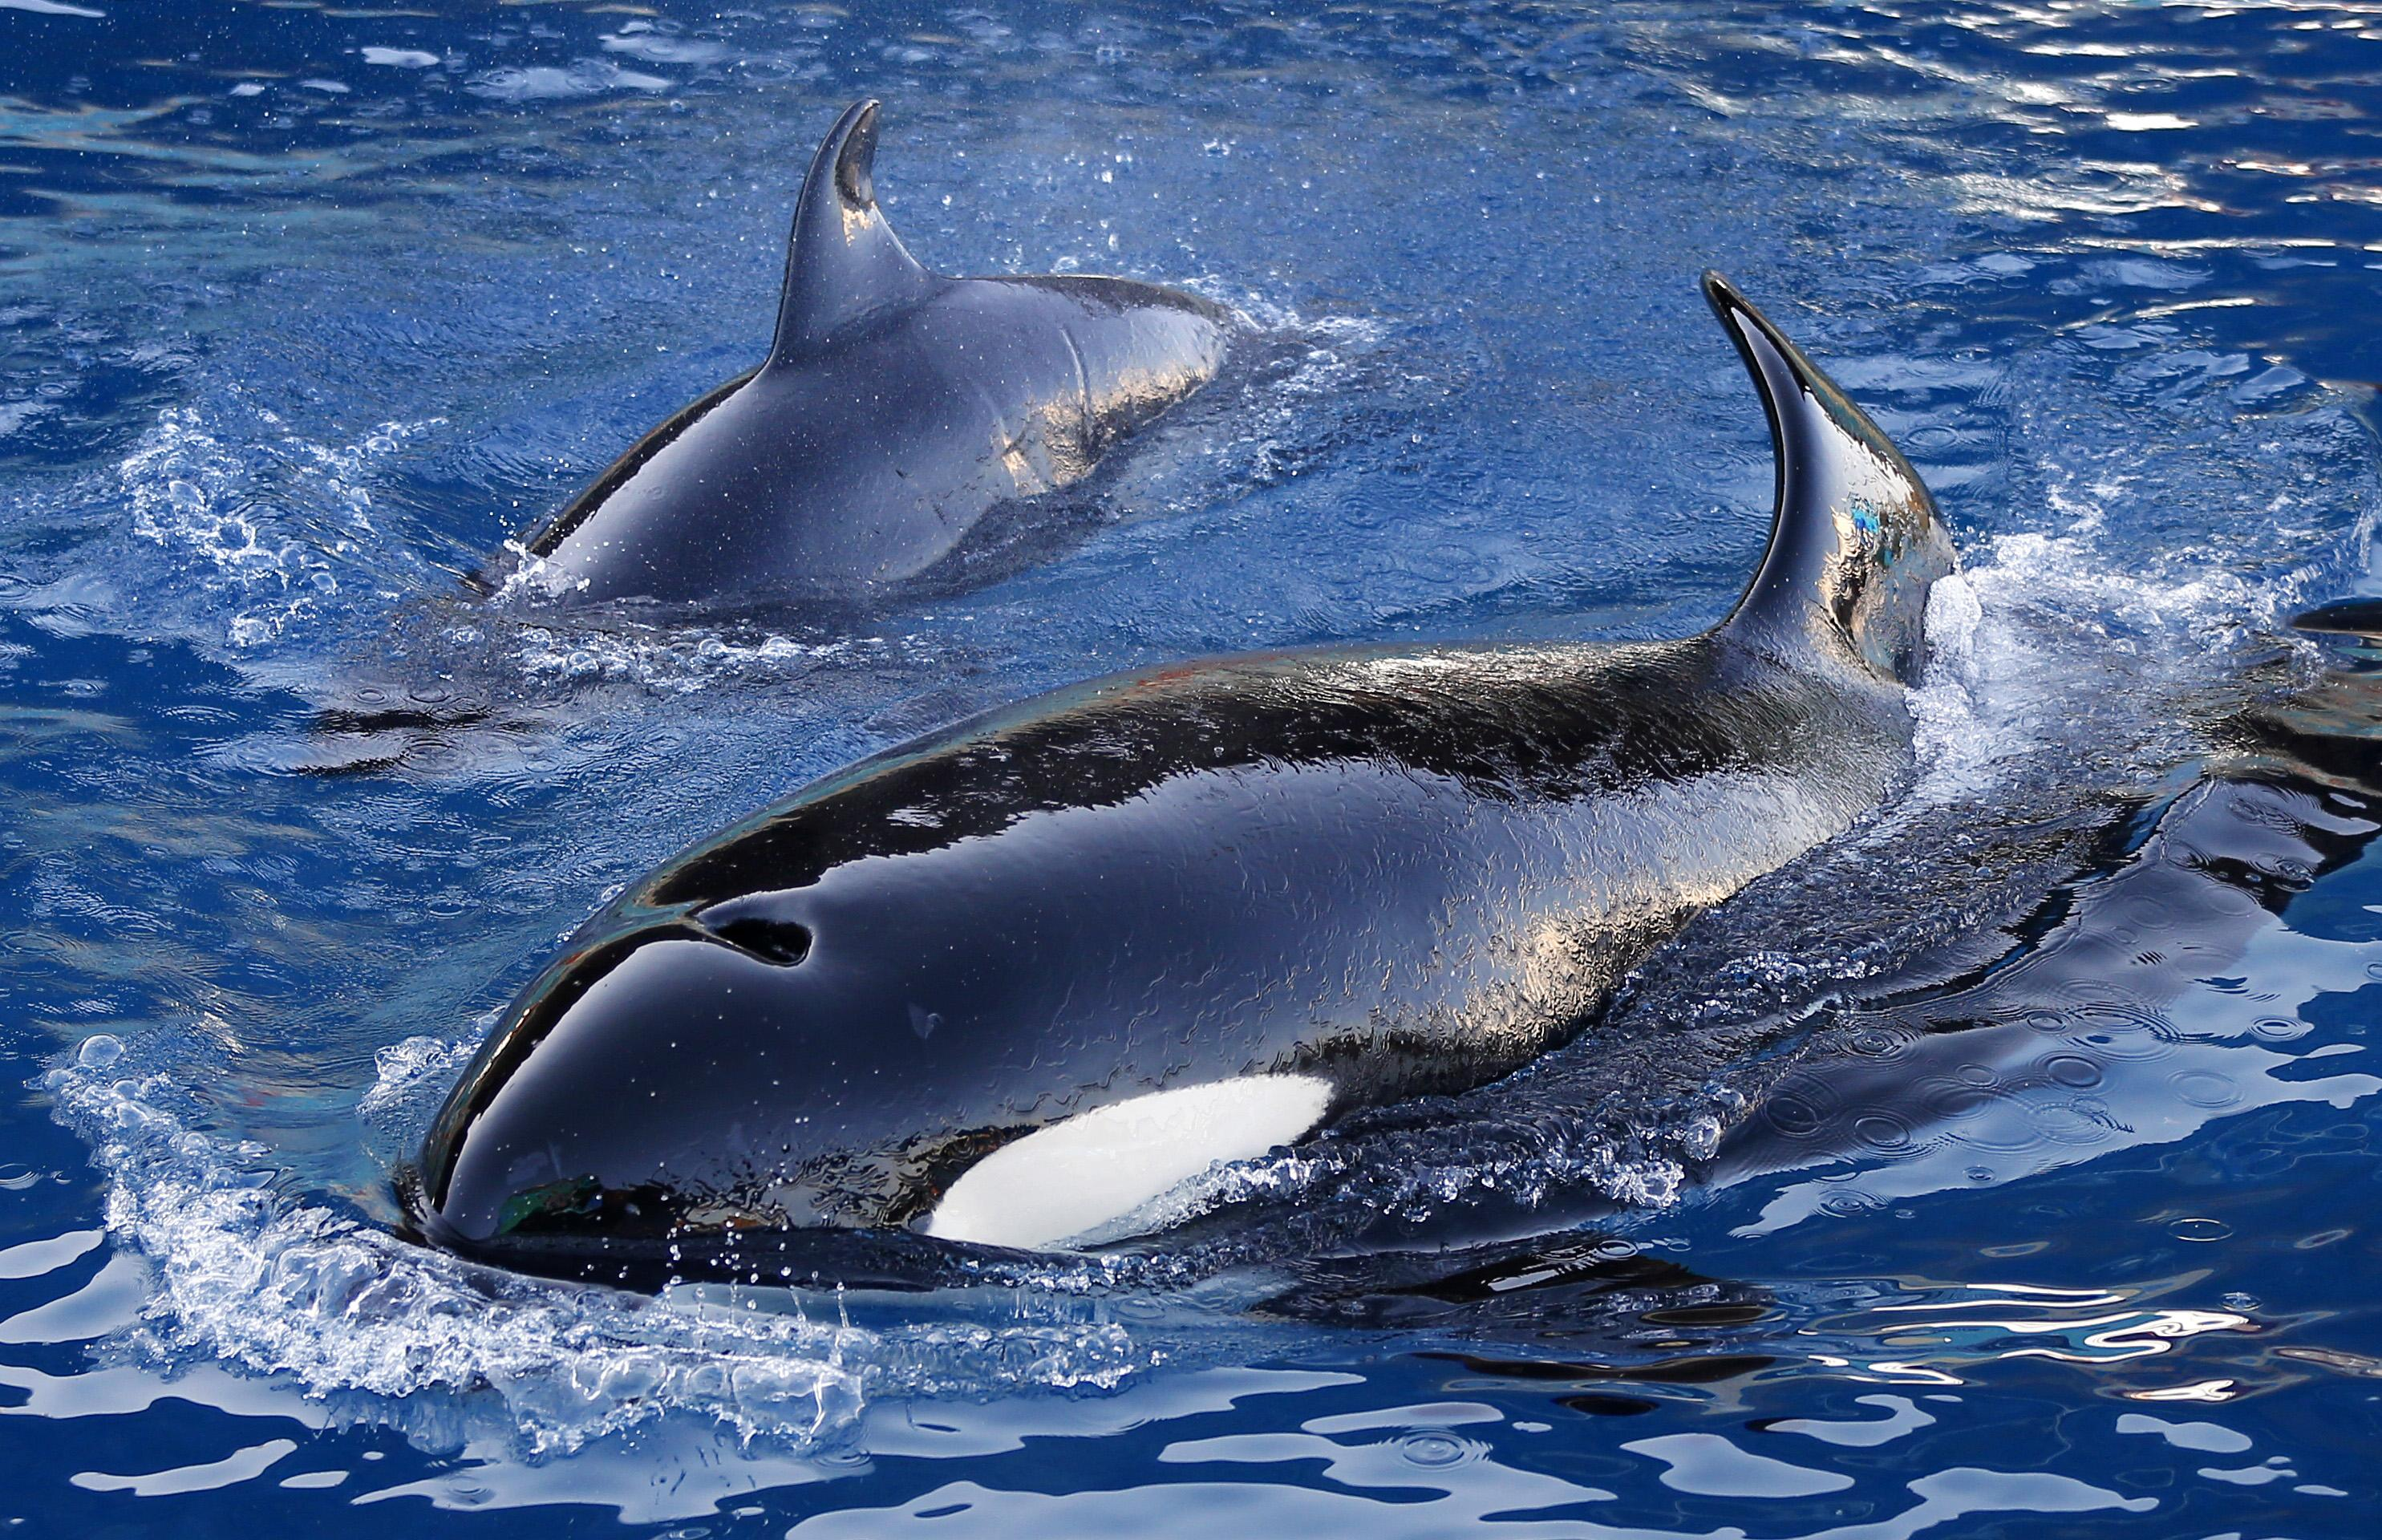 Spectacular footage of swimmer surrounded by killer whales